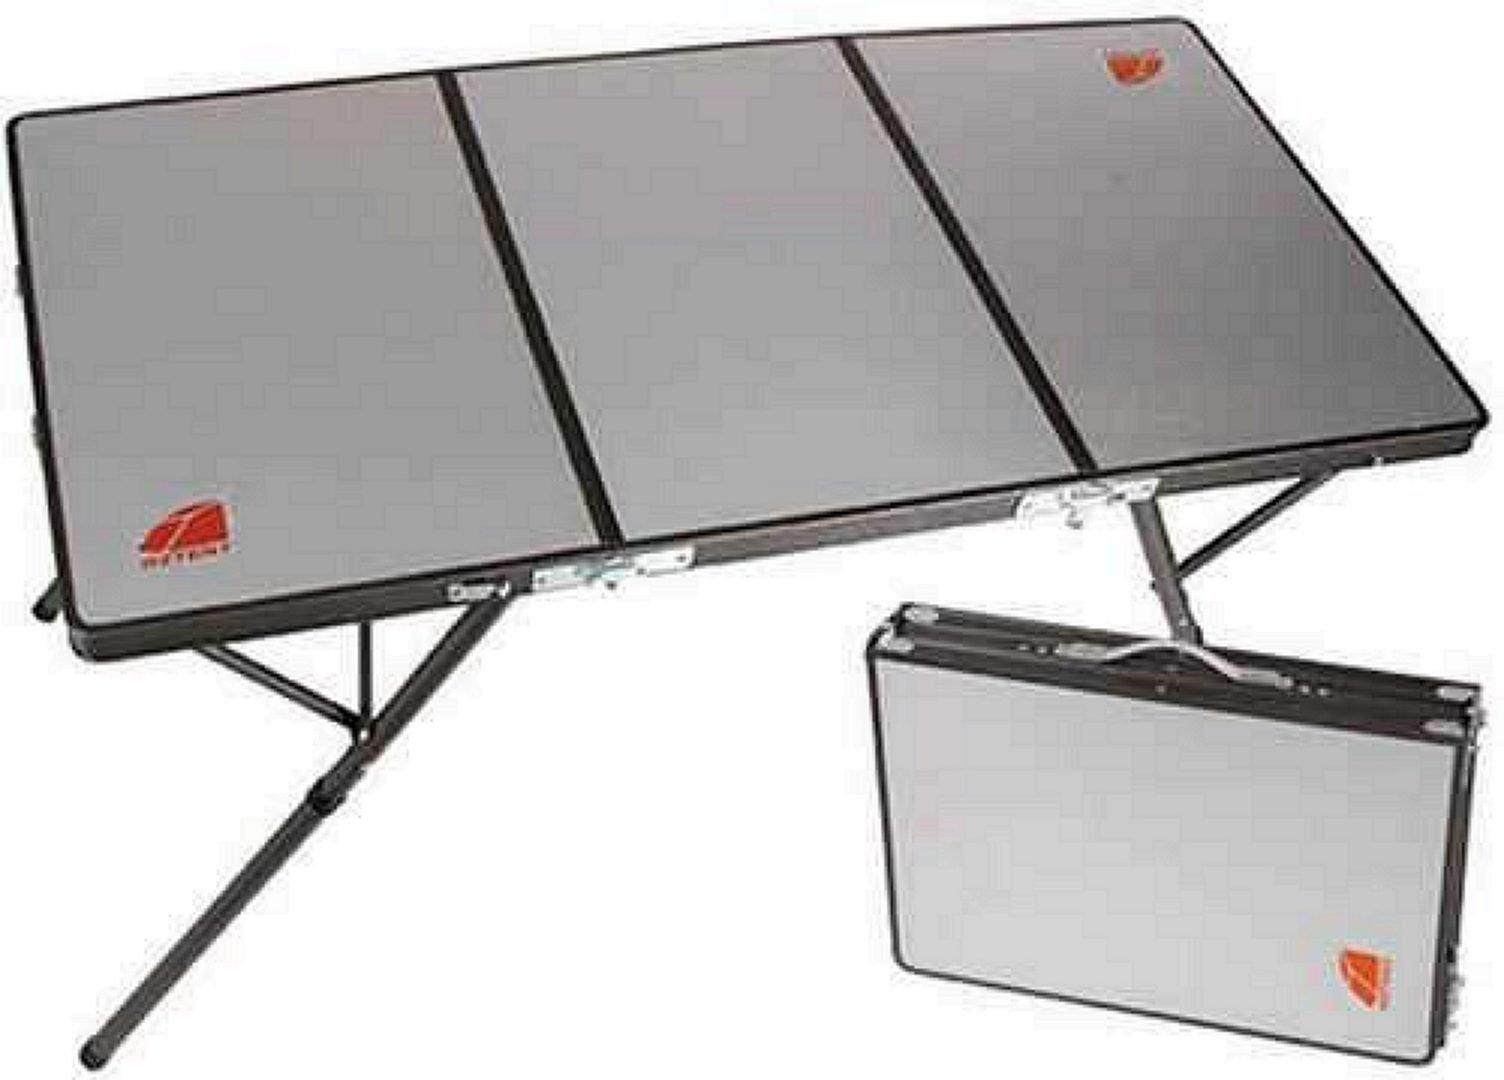 Tri-Folding camping table folded and in carying suitcase